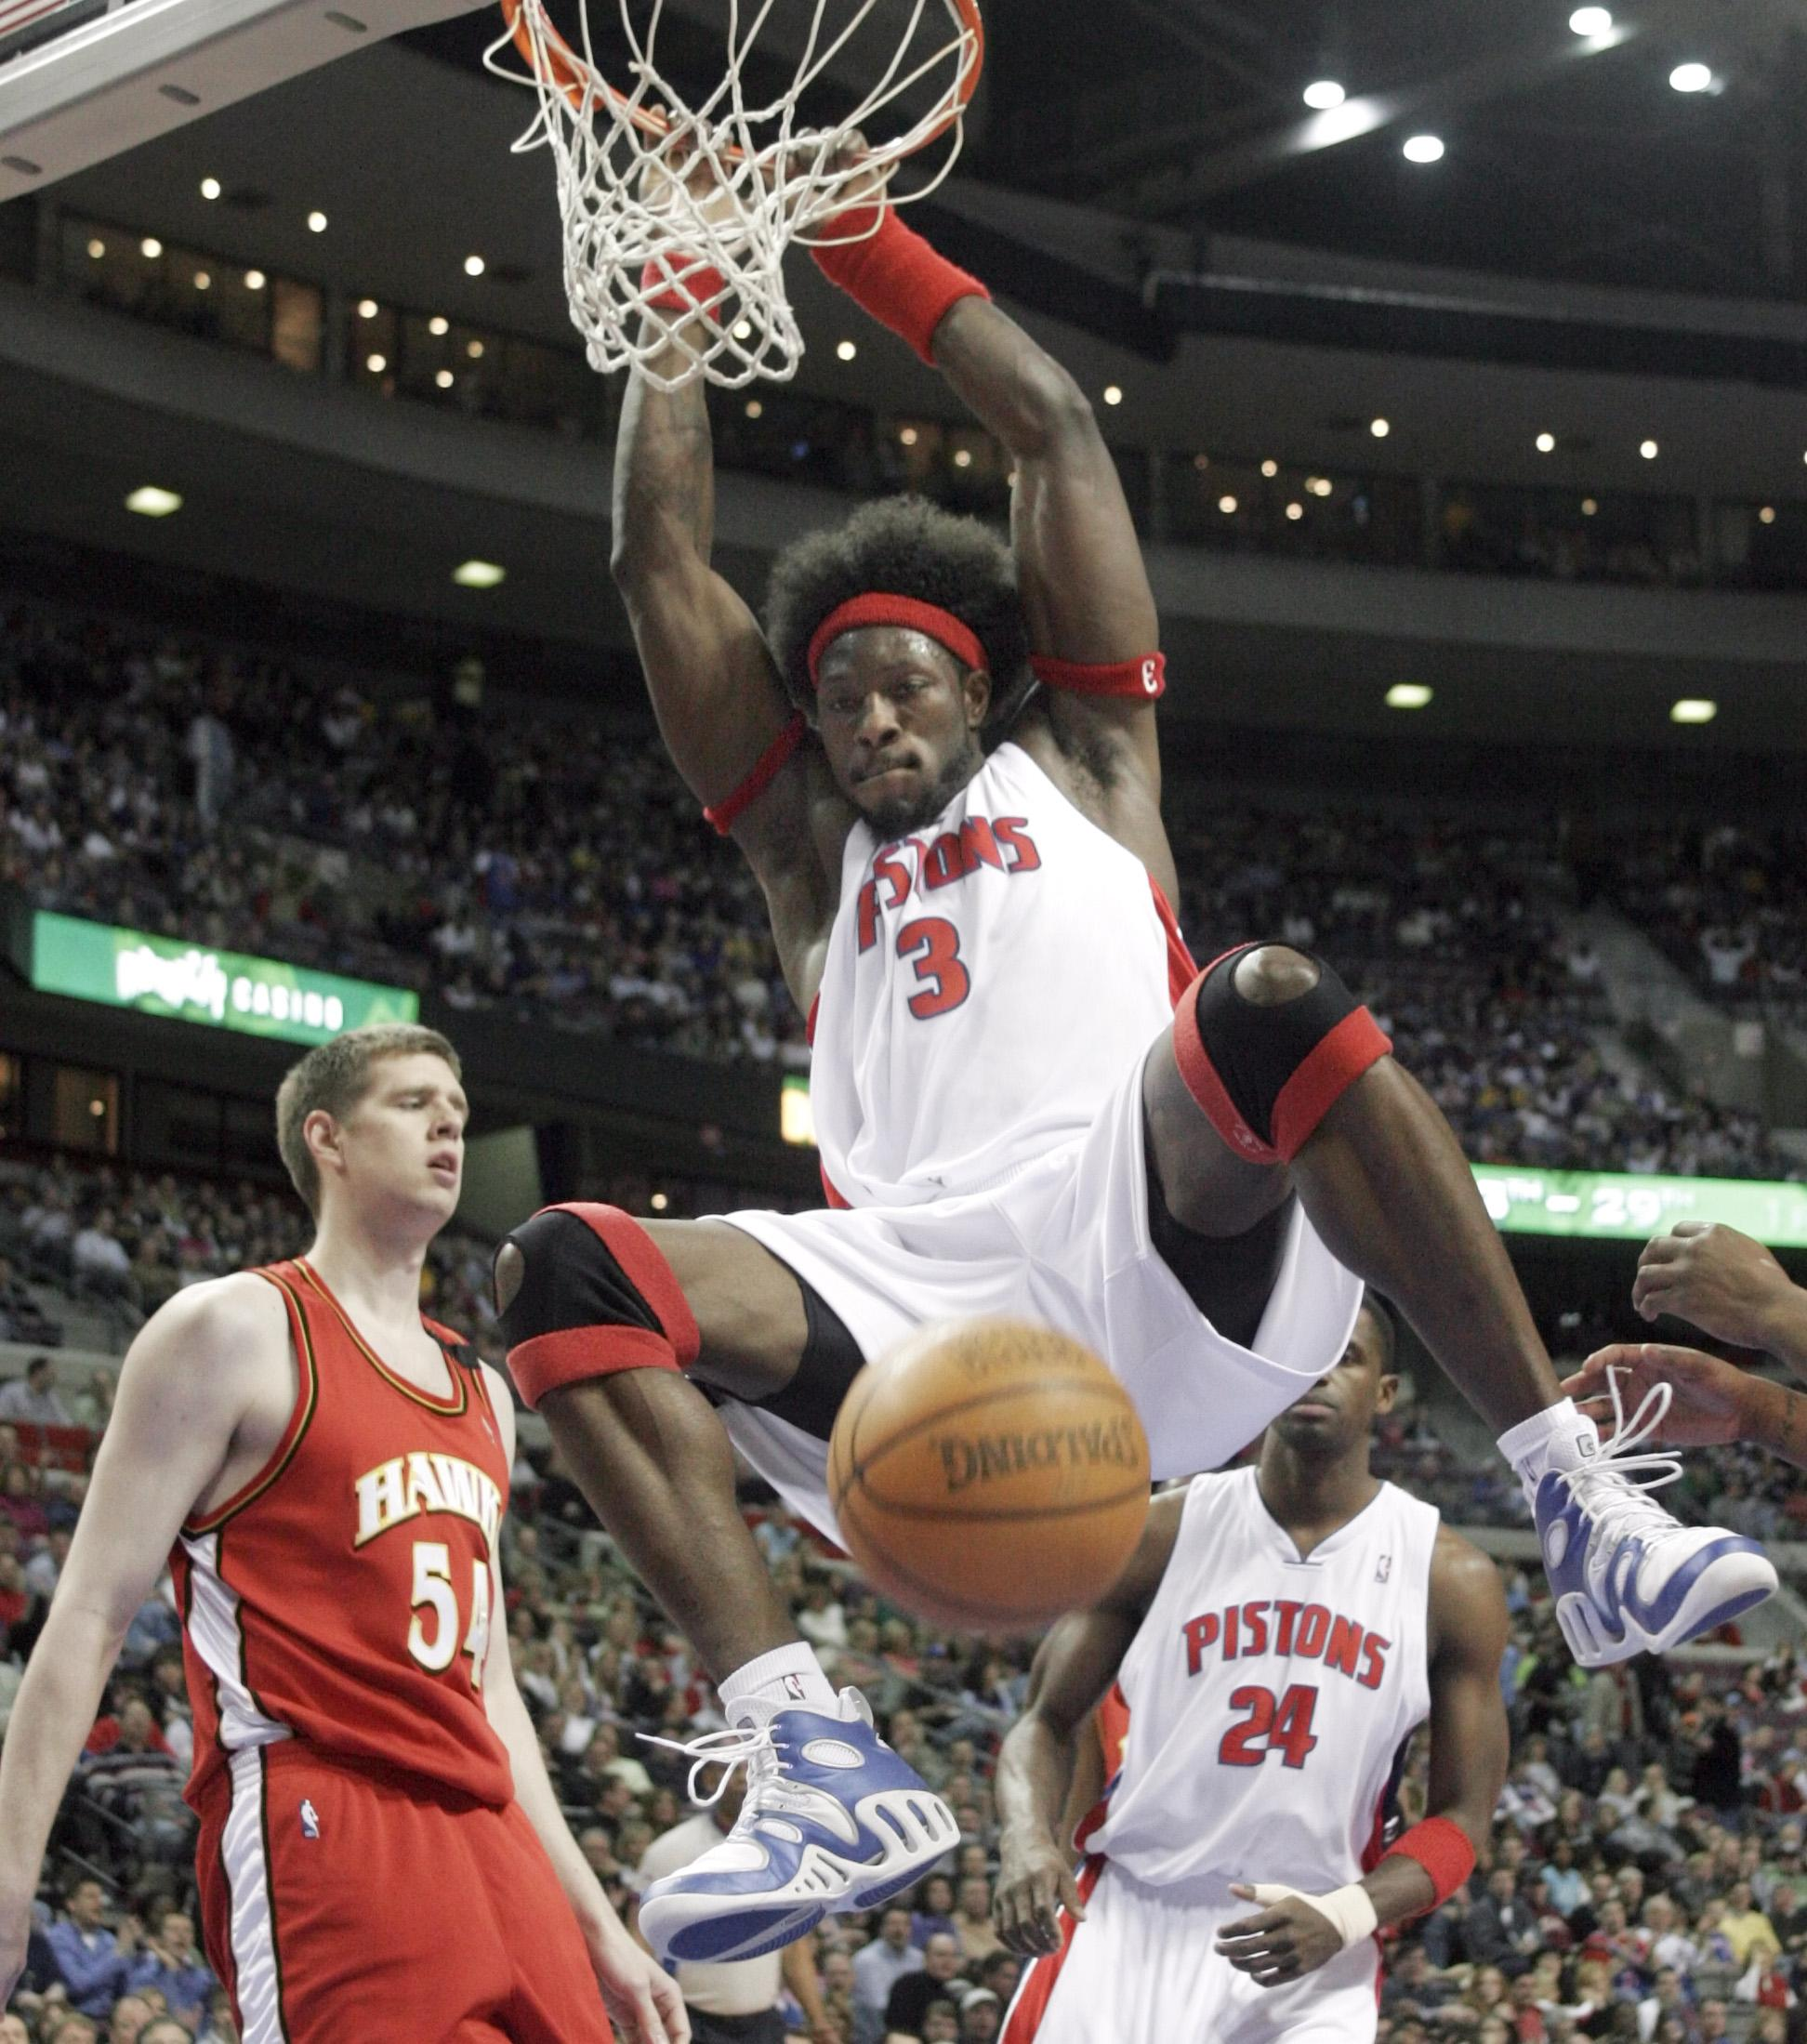 Ben Wallace looks forward to jersey retirement with ...